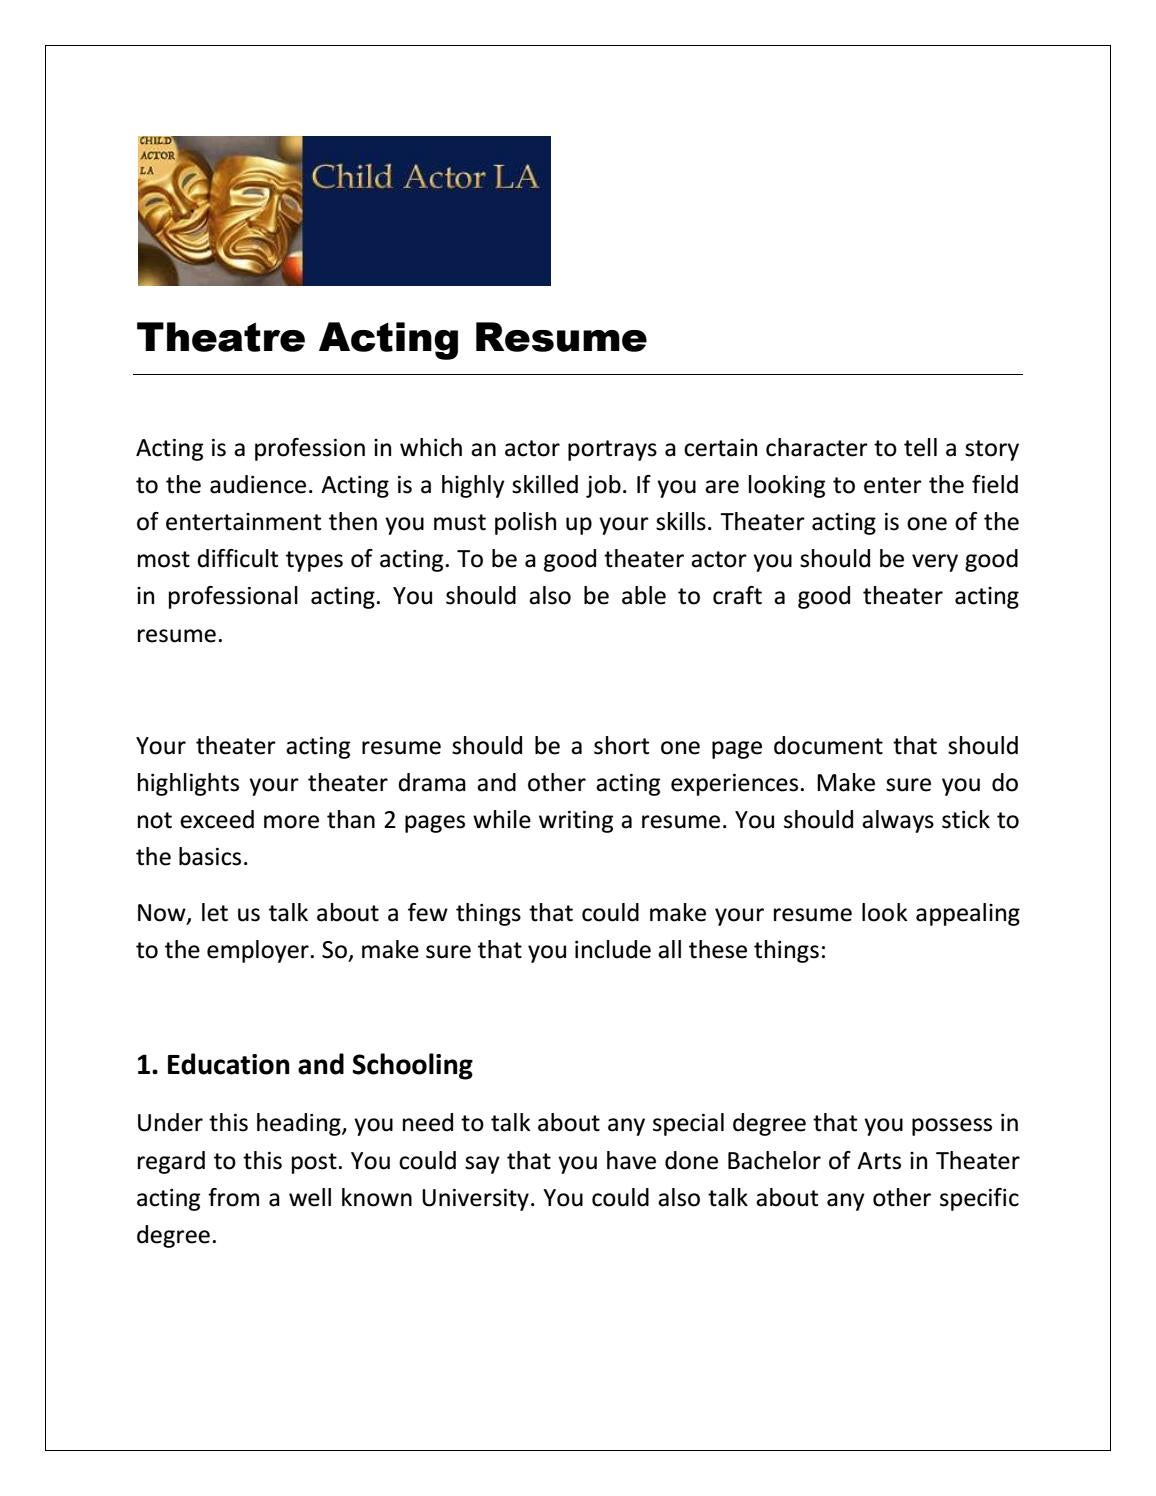 Child Resume Theatre Acting Resume By Child Actor La Issuu